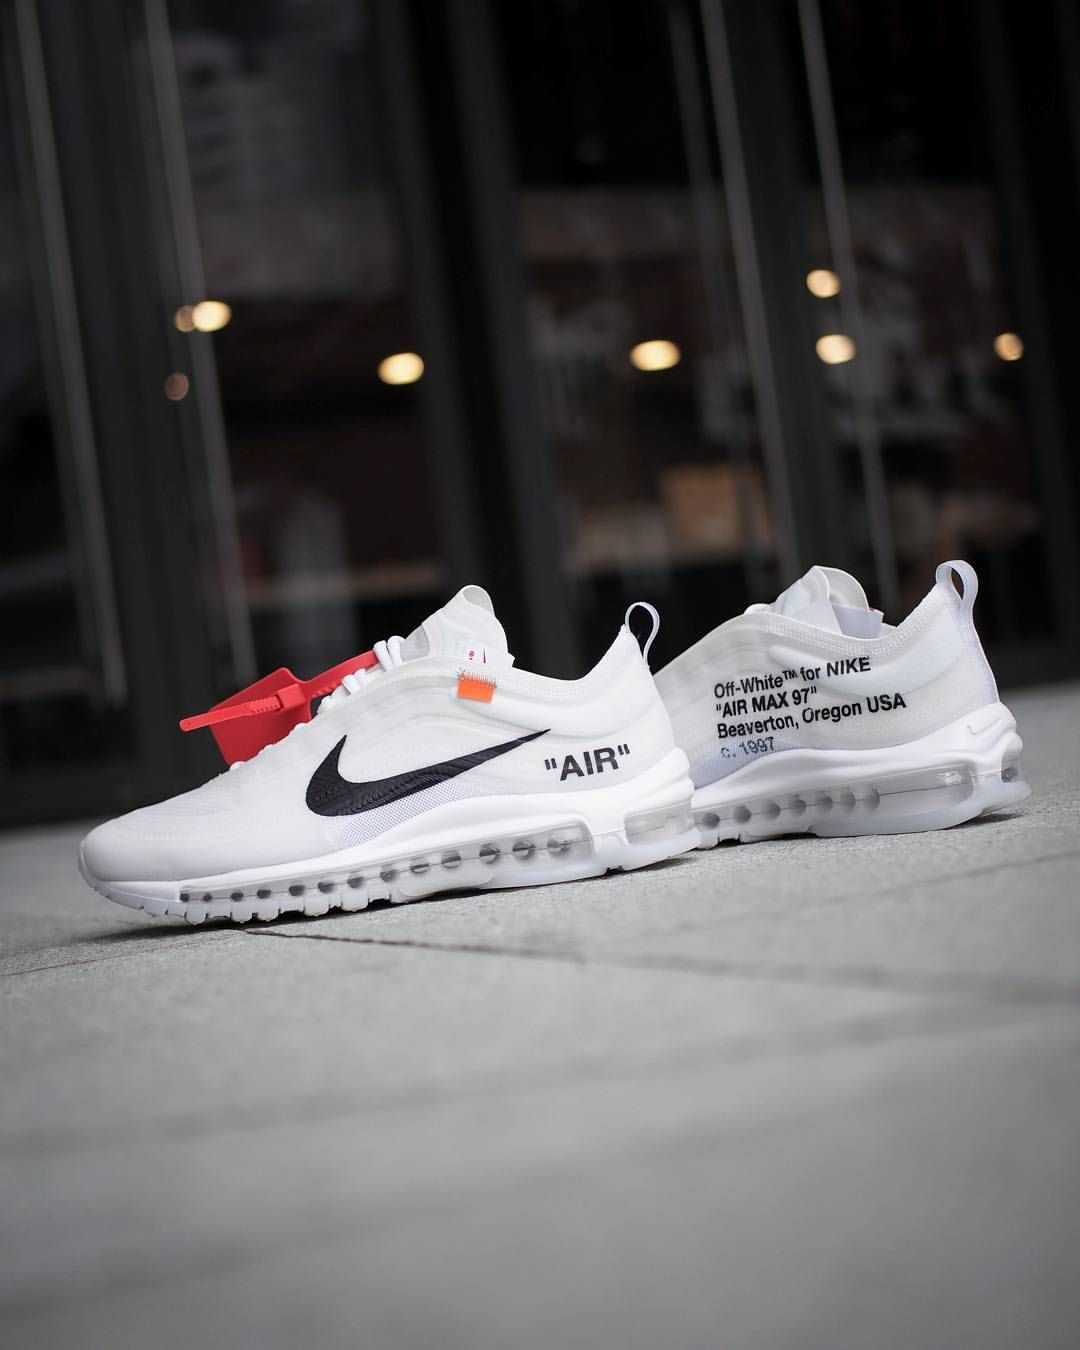 Off Blanco X Nike Air Max 97 Backstreet Por Fashion Por Backstreet Demond Johnson 3db60f